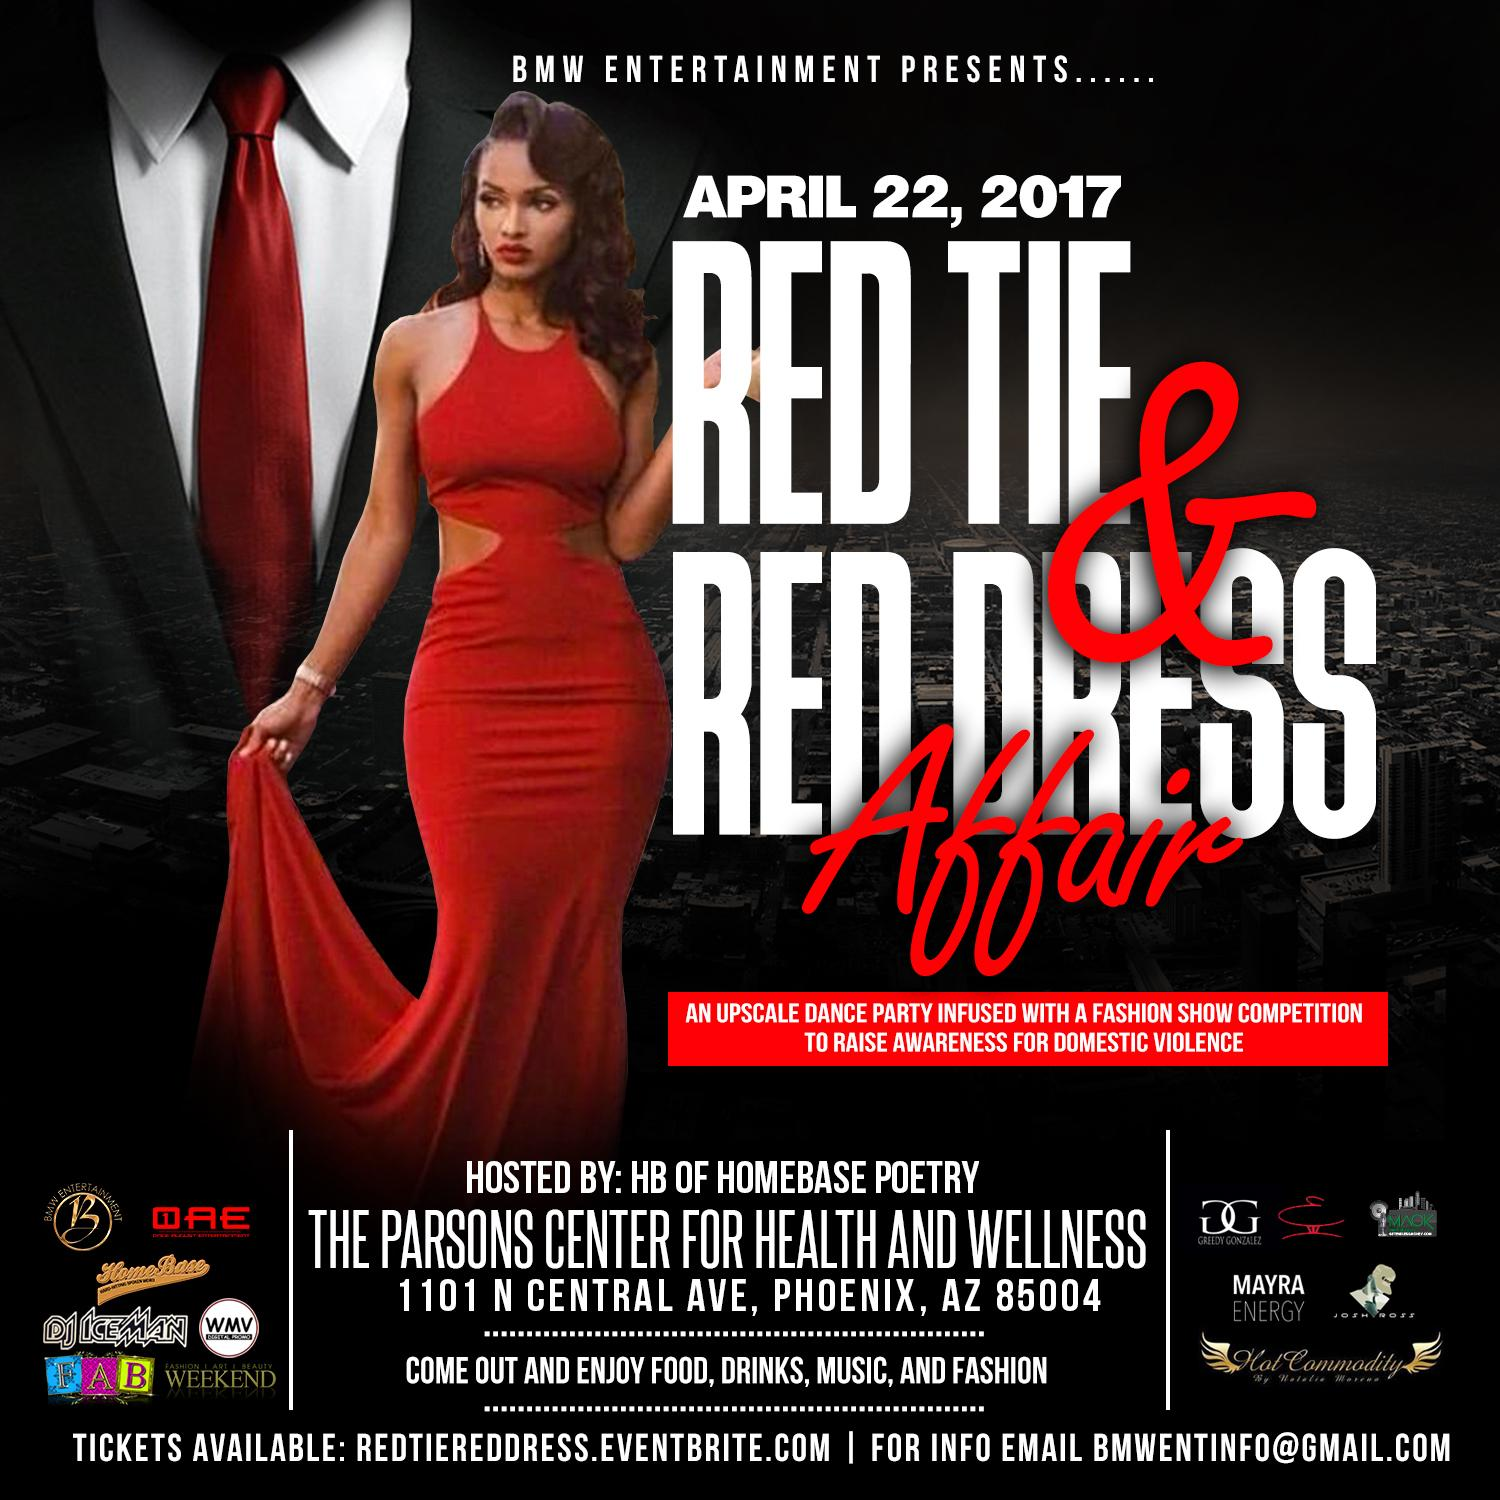 The Red Tie & Red Dress Affair. The Red Tie & Red Dress Affair